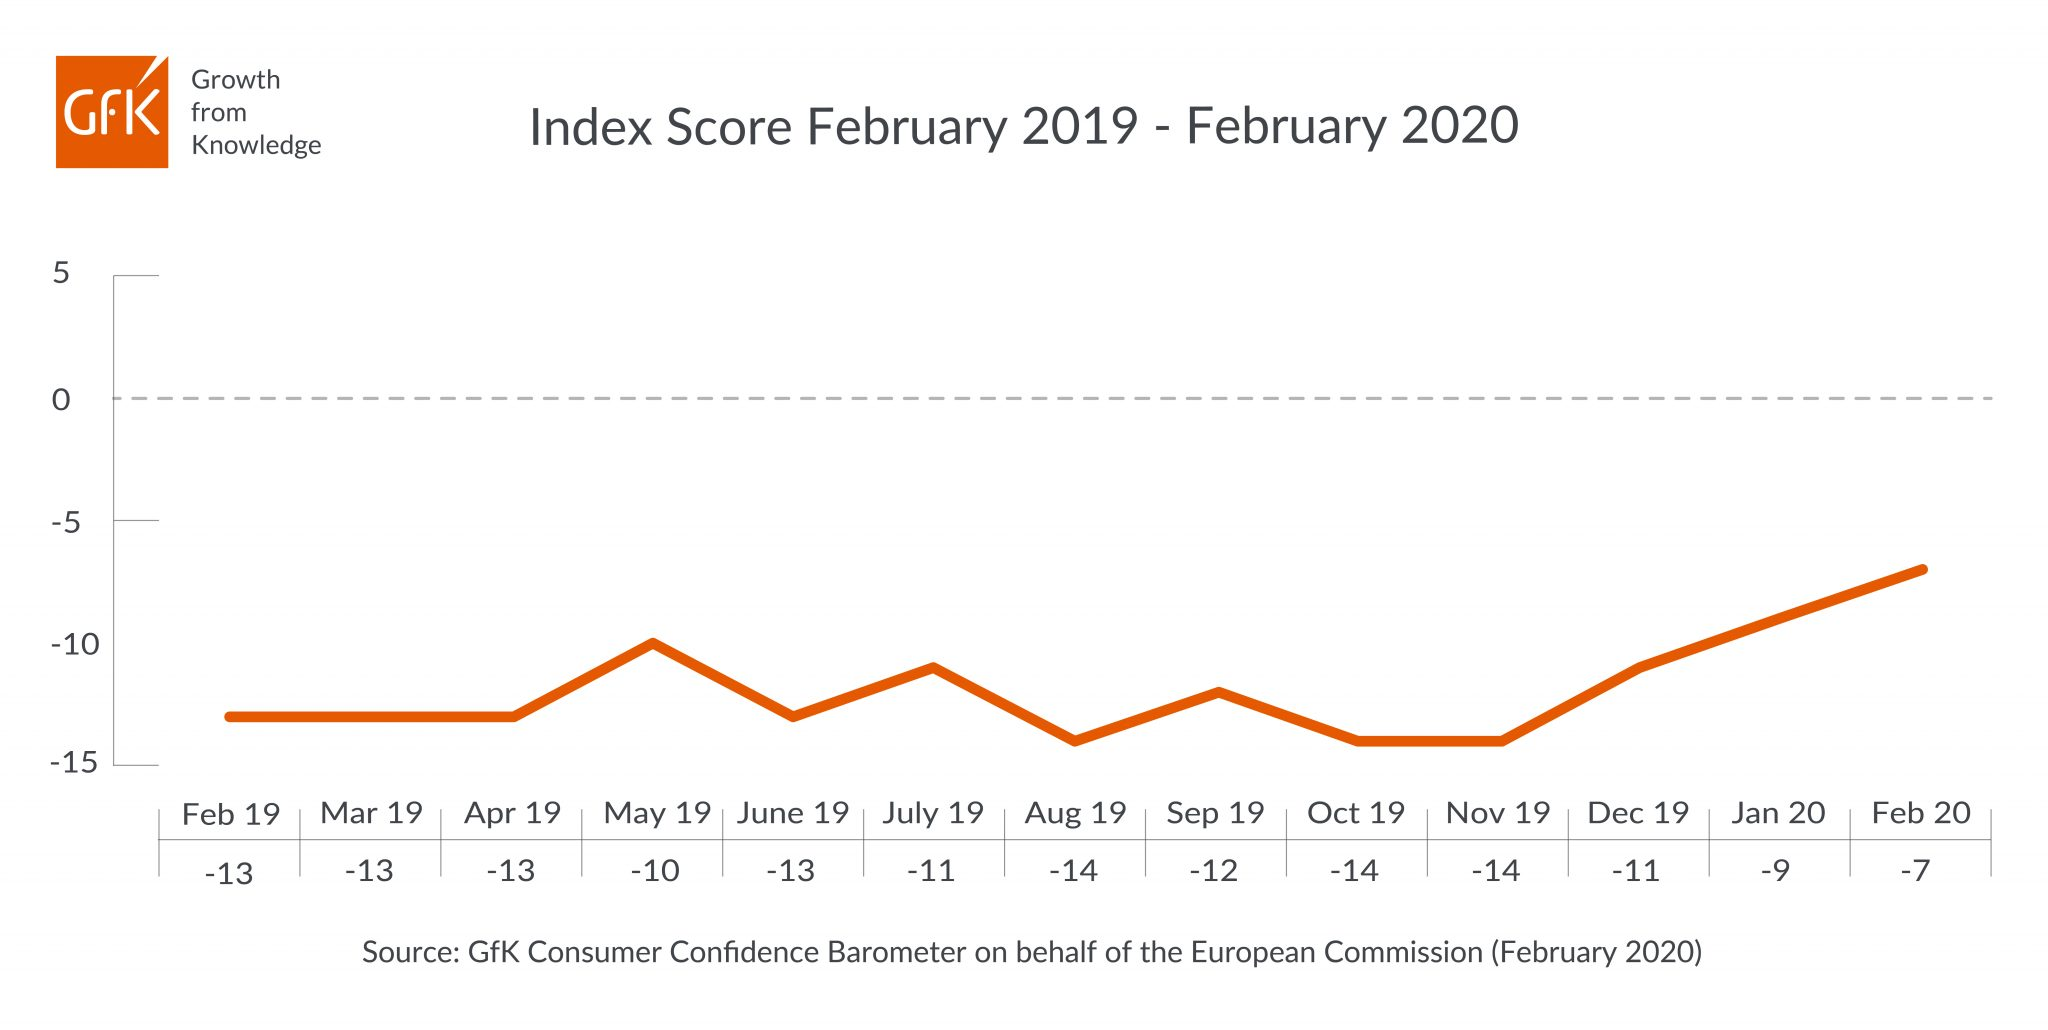 Consumer confidence increases for 3rd consecutive month